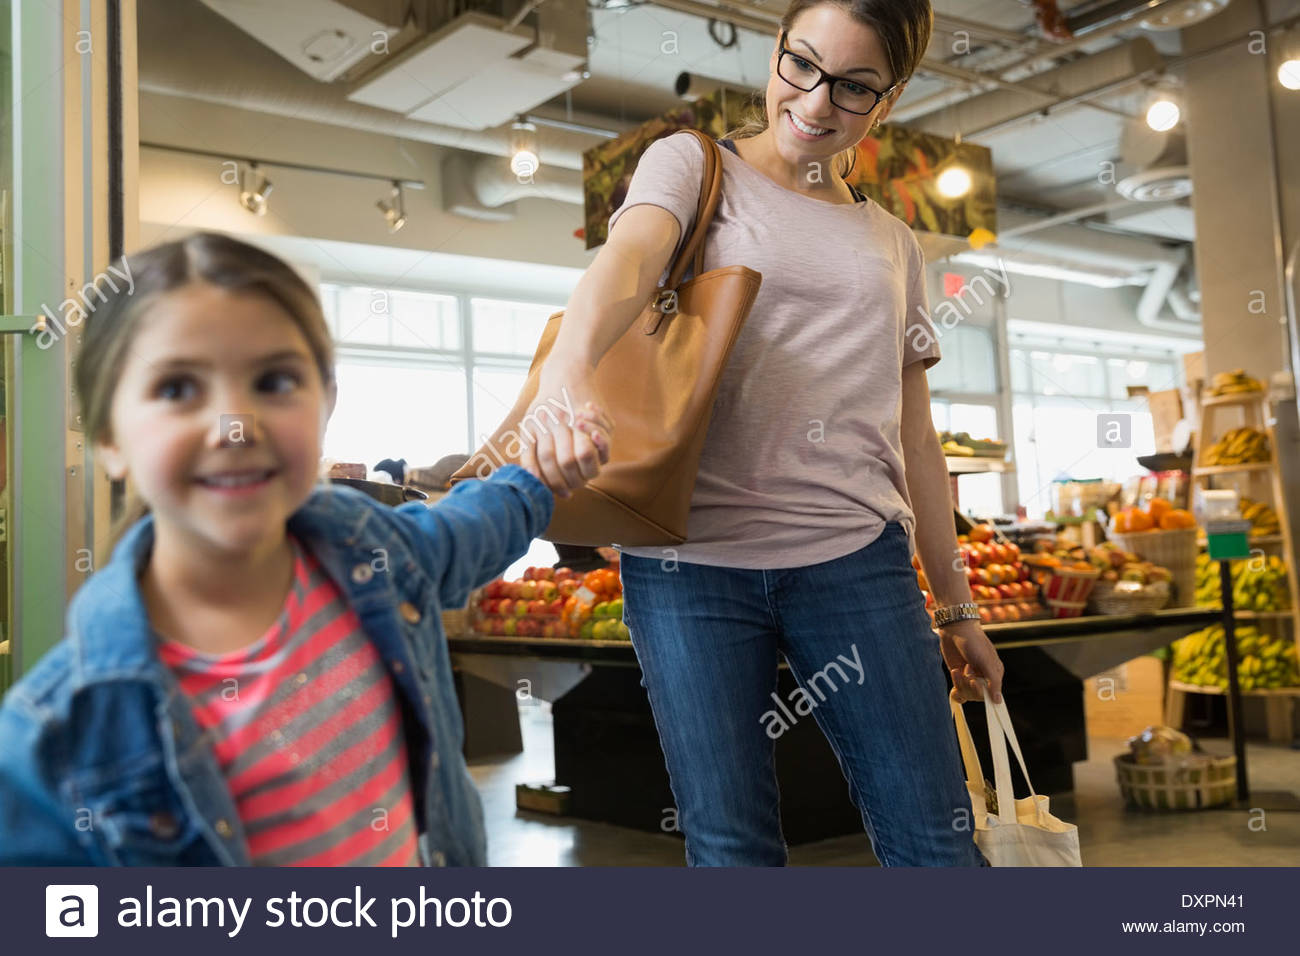 Daughter pulling mothers arm in market - Stock Image